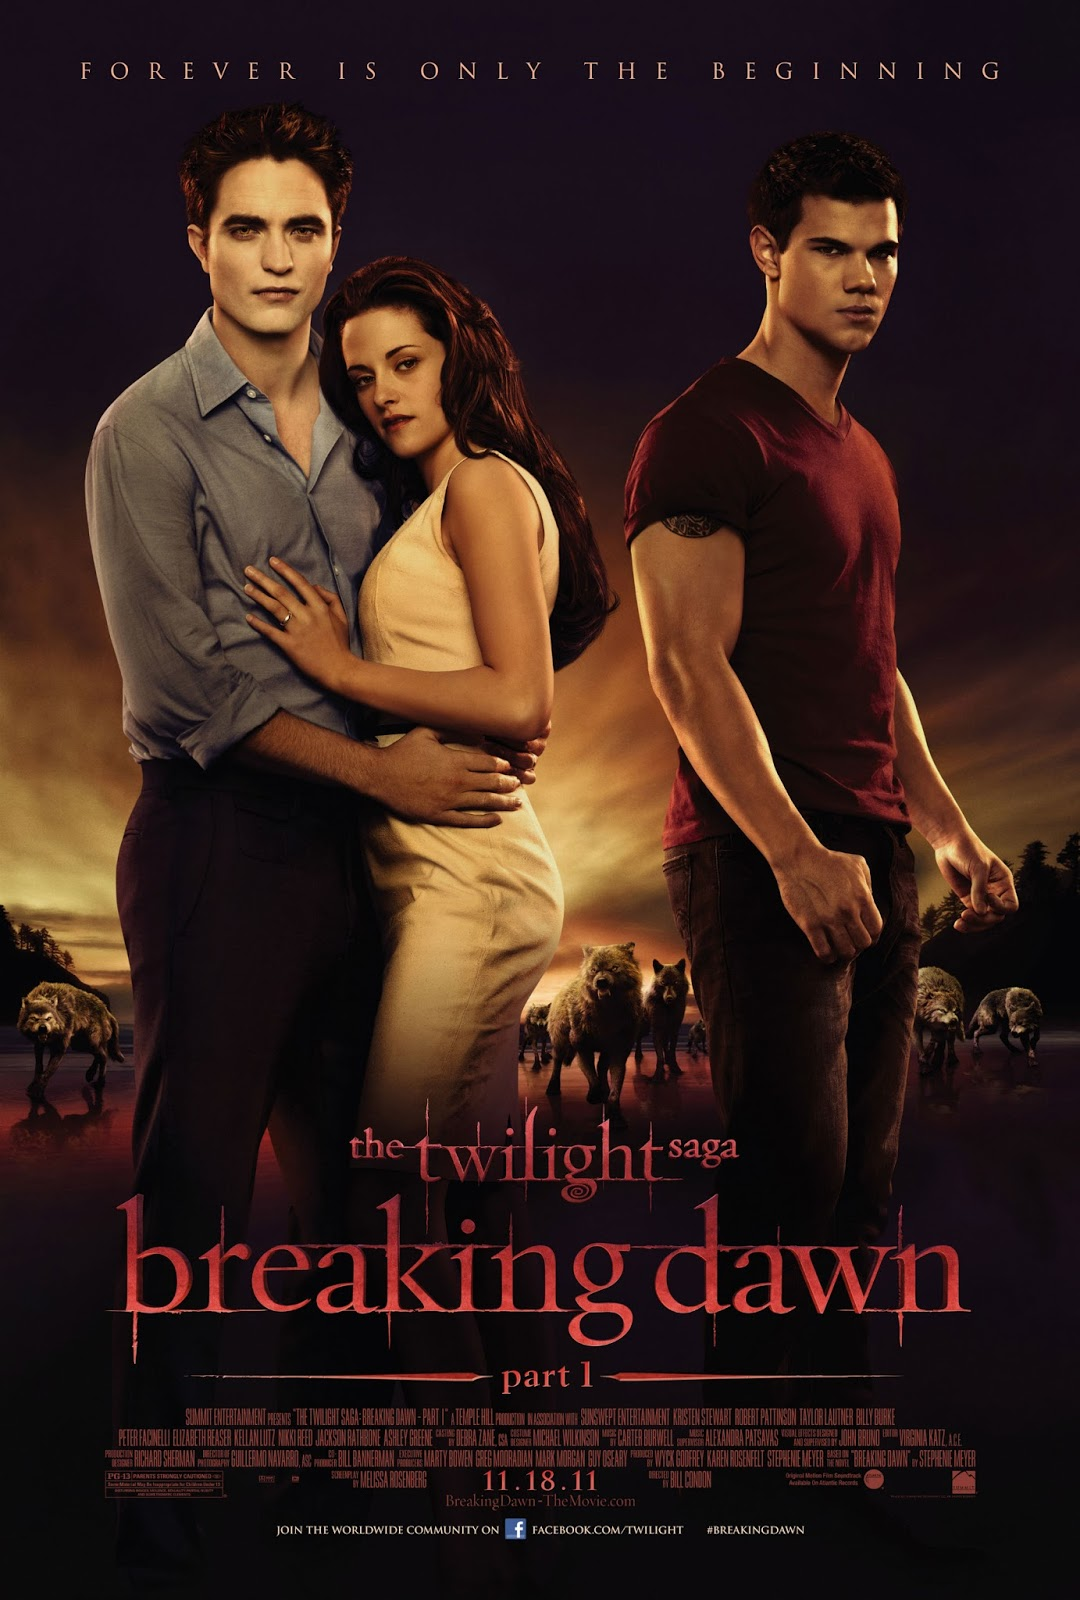 Hừng Đông Phần 1 - The Twilight Saga: Breaking Dawn Part 1